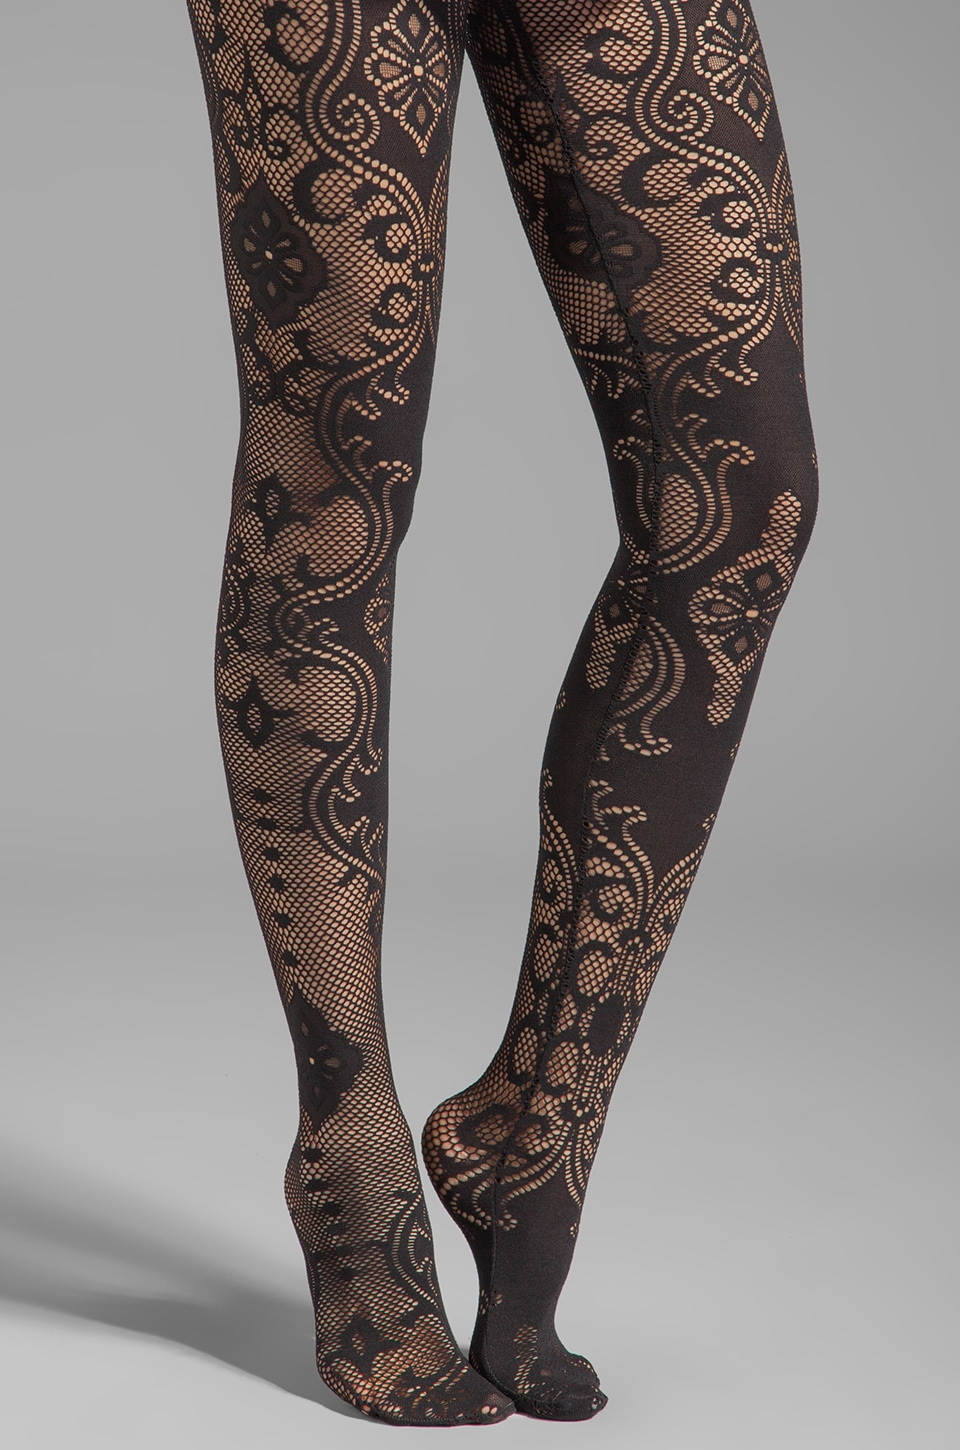 Yummie by Heather Thomson Bernadette Baroque Lace Legwear in Black